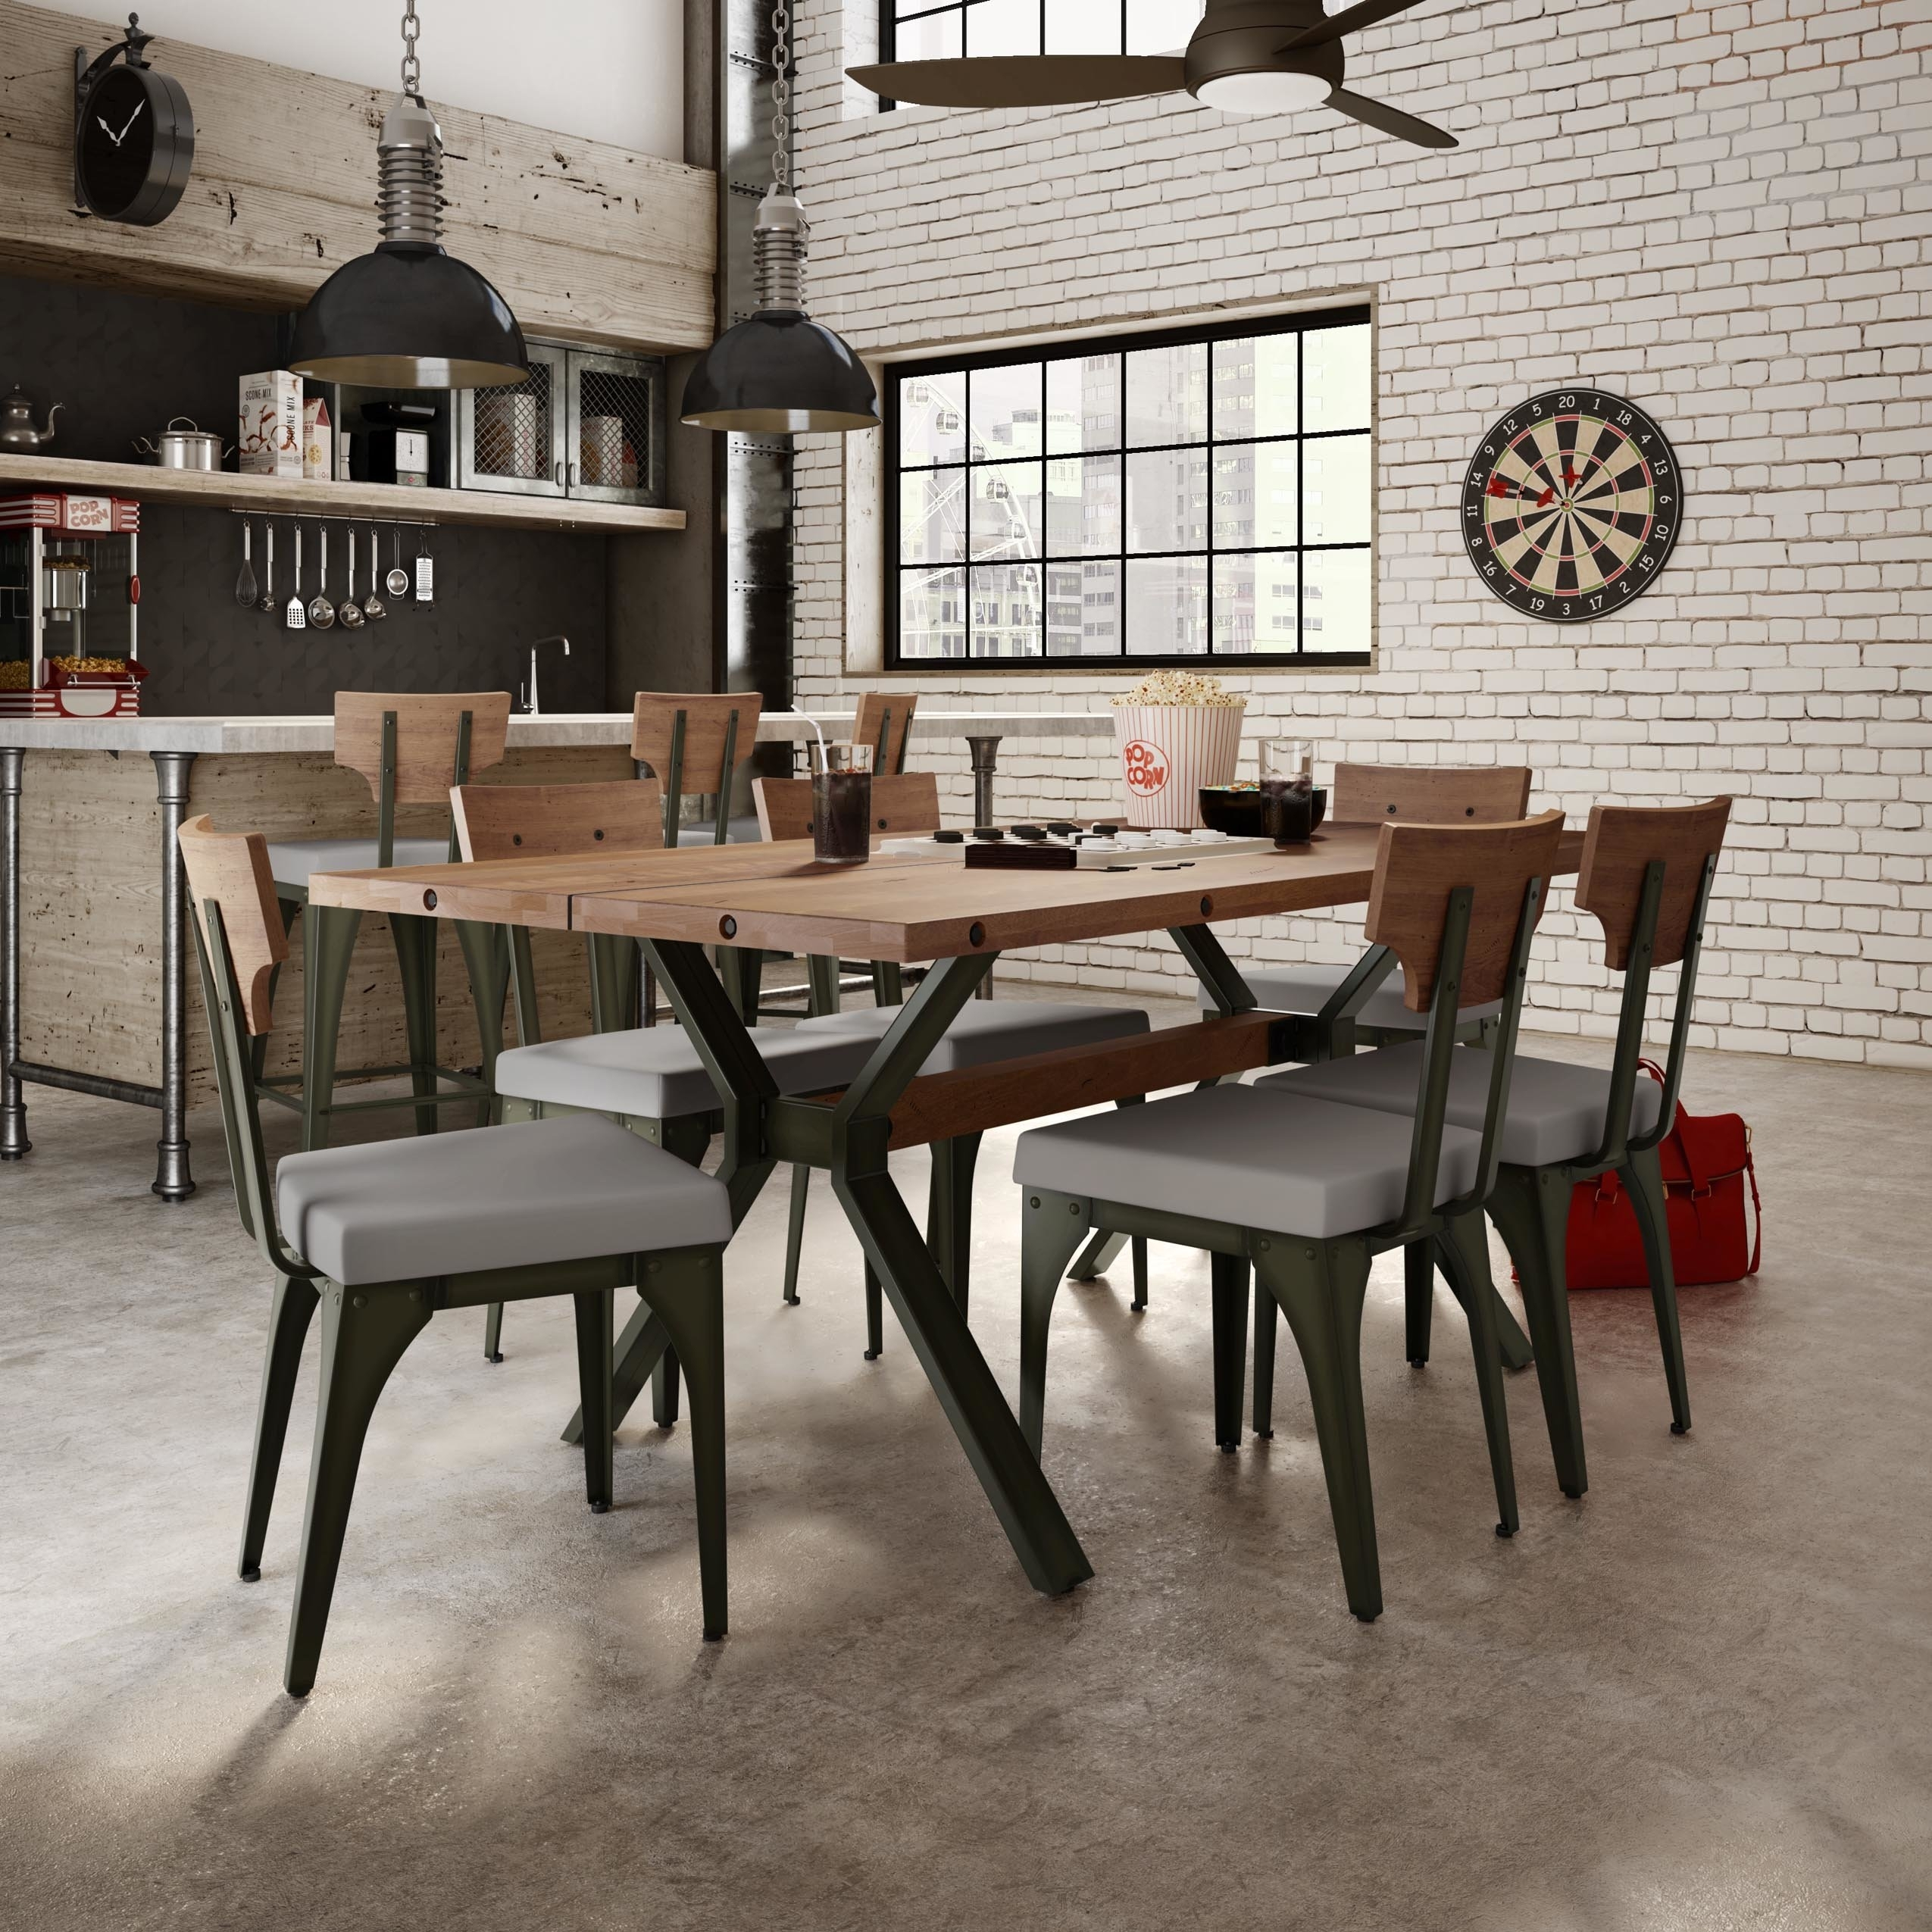 17 Stories Darcelle 7 Piece Industrial Dining Set | Wayfair Inside Most Up To Date Laurent 5 Piece Round Dining Sets With Wood Chairs (Image 2 of 20)